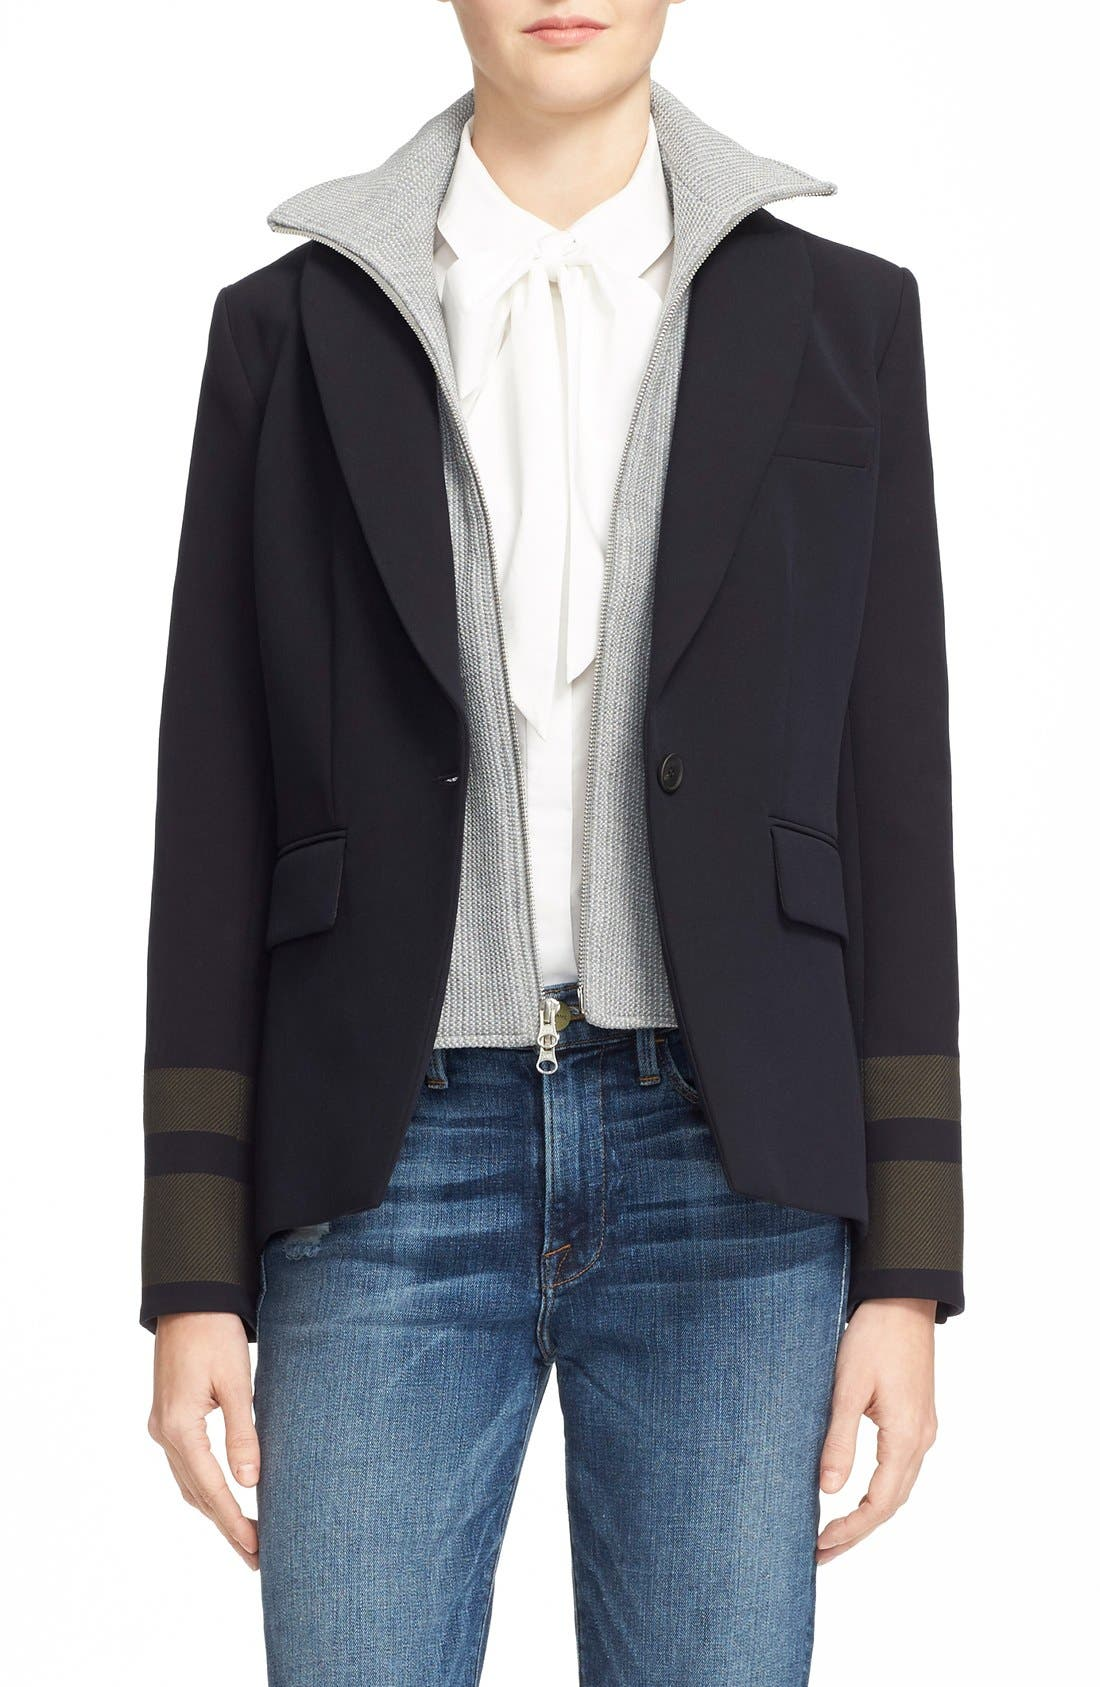 Main Image - Veronica Beard Cutaway Jacket with Removable Knit Dickey